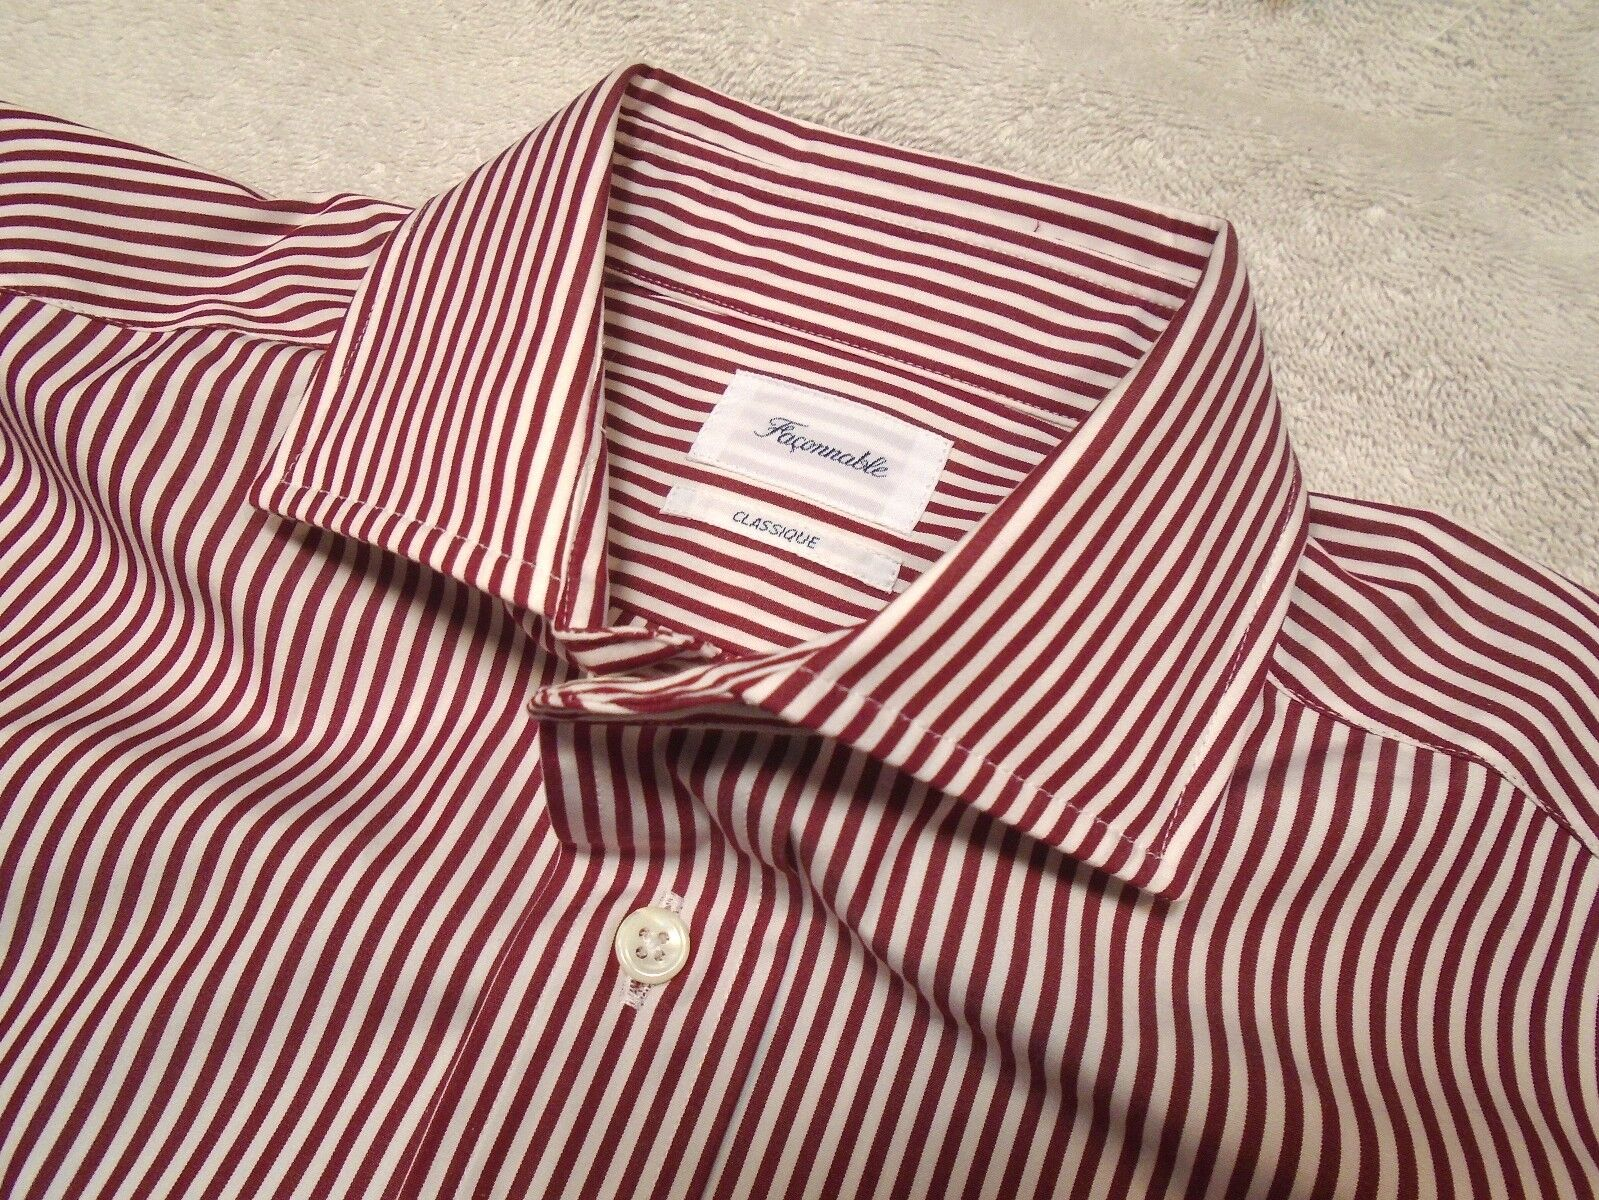 Faconnable Striped 100% Cotton Spread Collar Dress Shirt NWT 15 x 35/36 235